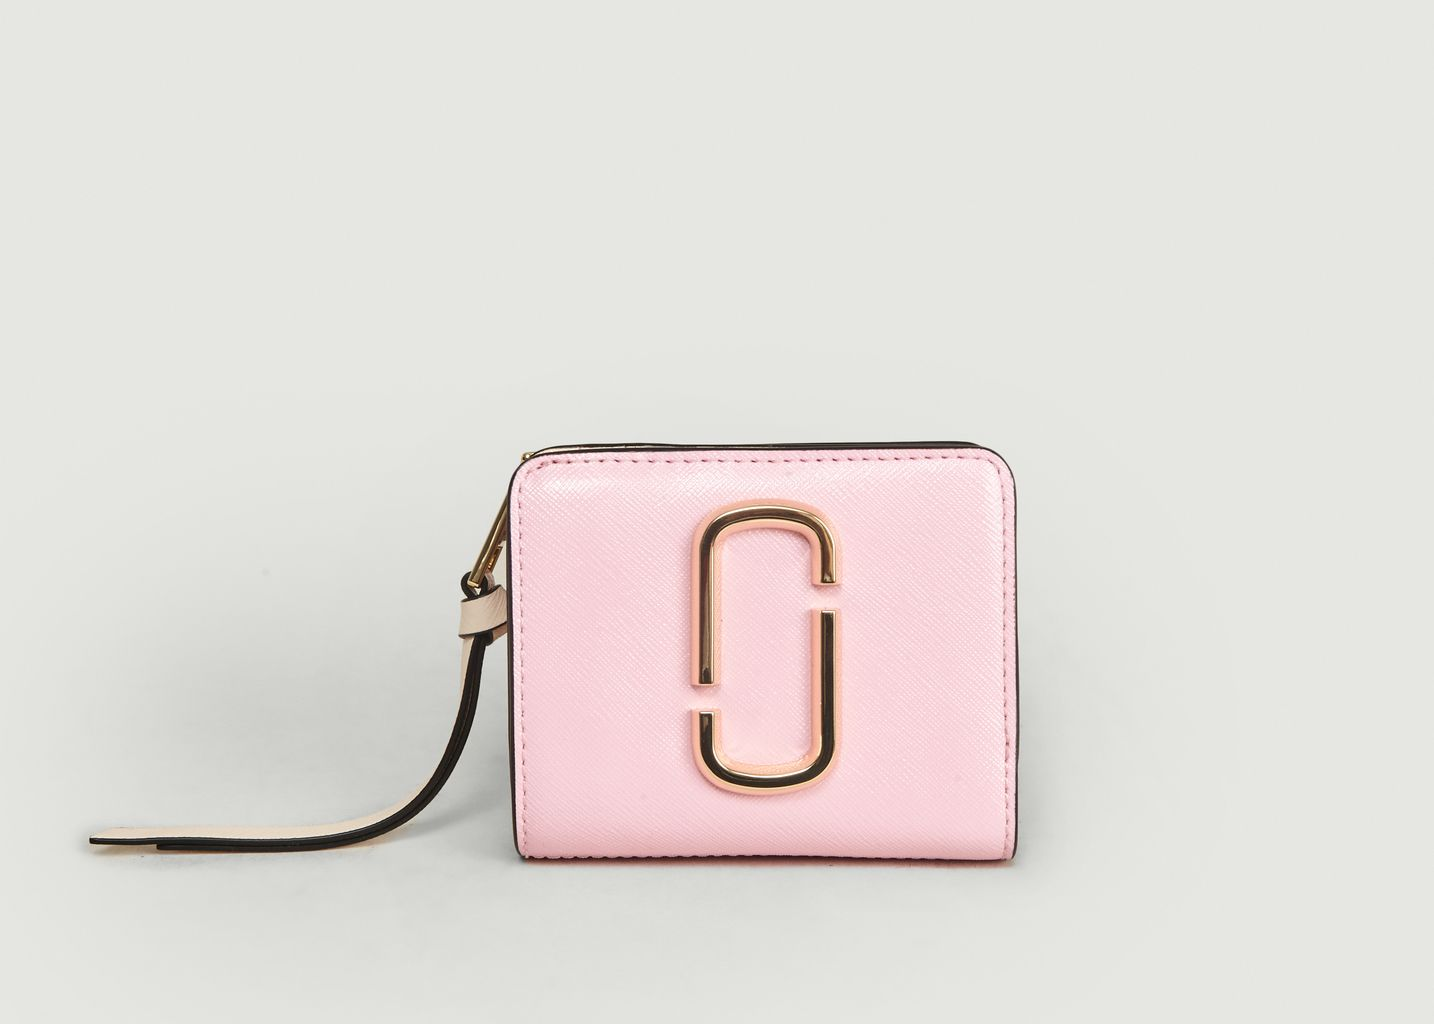 Portefeuille Snapshot Mini Compact - The Marc Jacobs